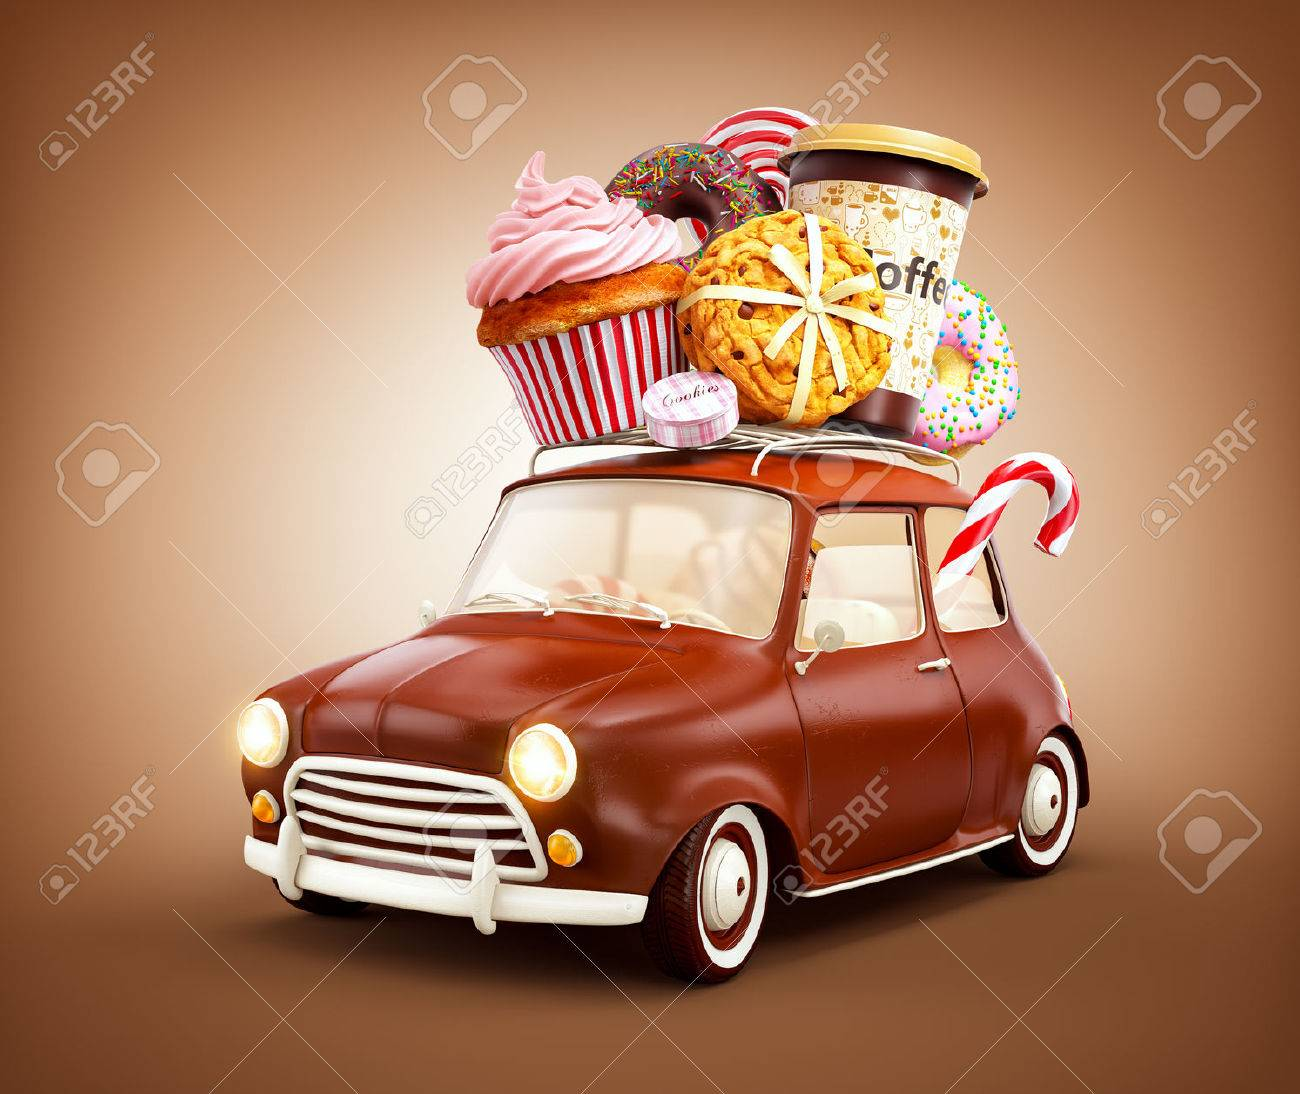 Cute fantastic chocolade car with sweets and coffee on top. Stock Photo - 58485387